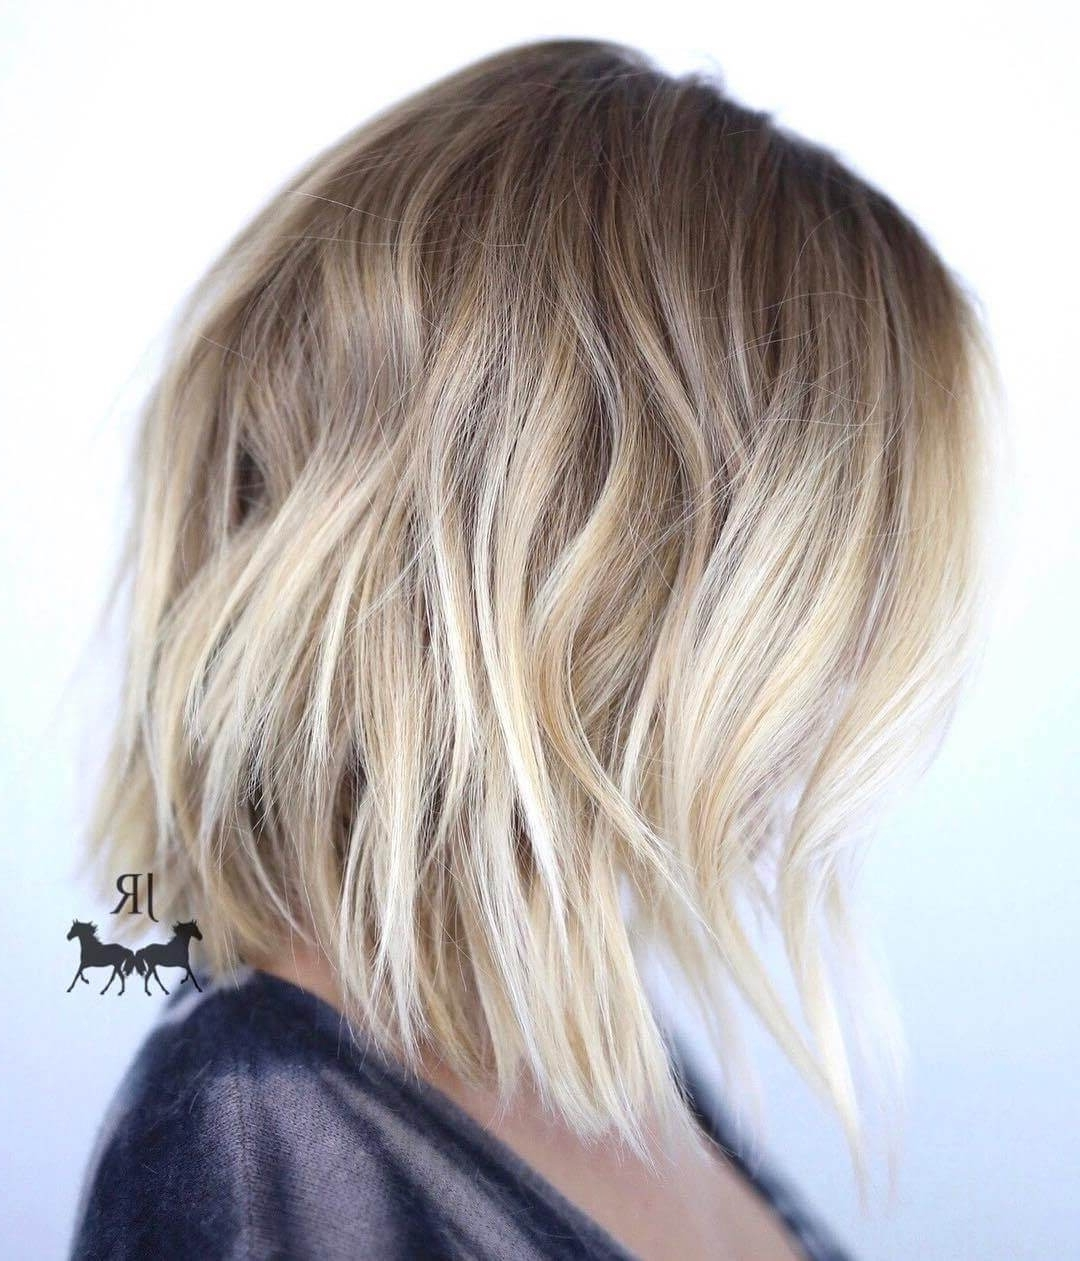 50 Fresh Short Blonde Hair Ideas To Update Your Style In 2018 Inside Most Recently Released Long Bob Blonde Hairstyles With Babylights (View 4 of 20)